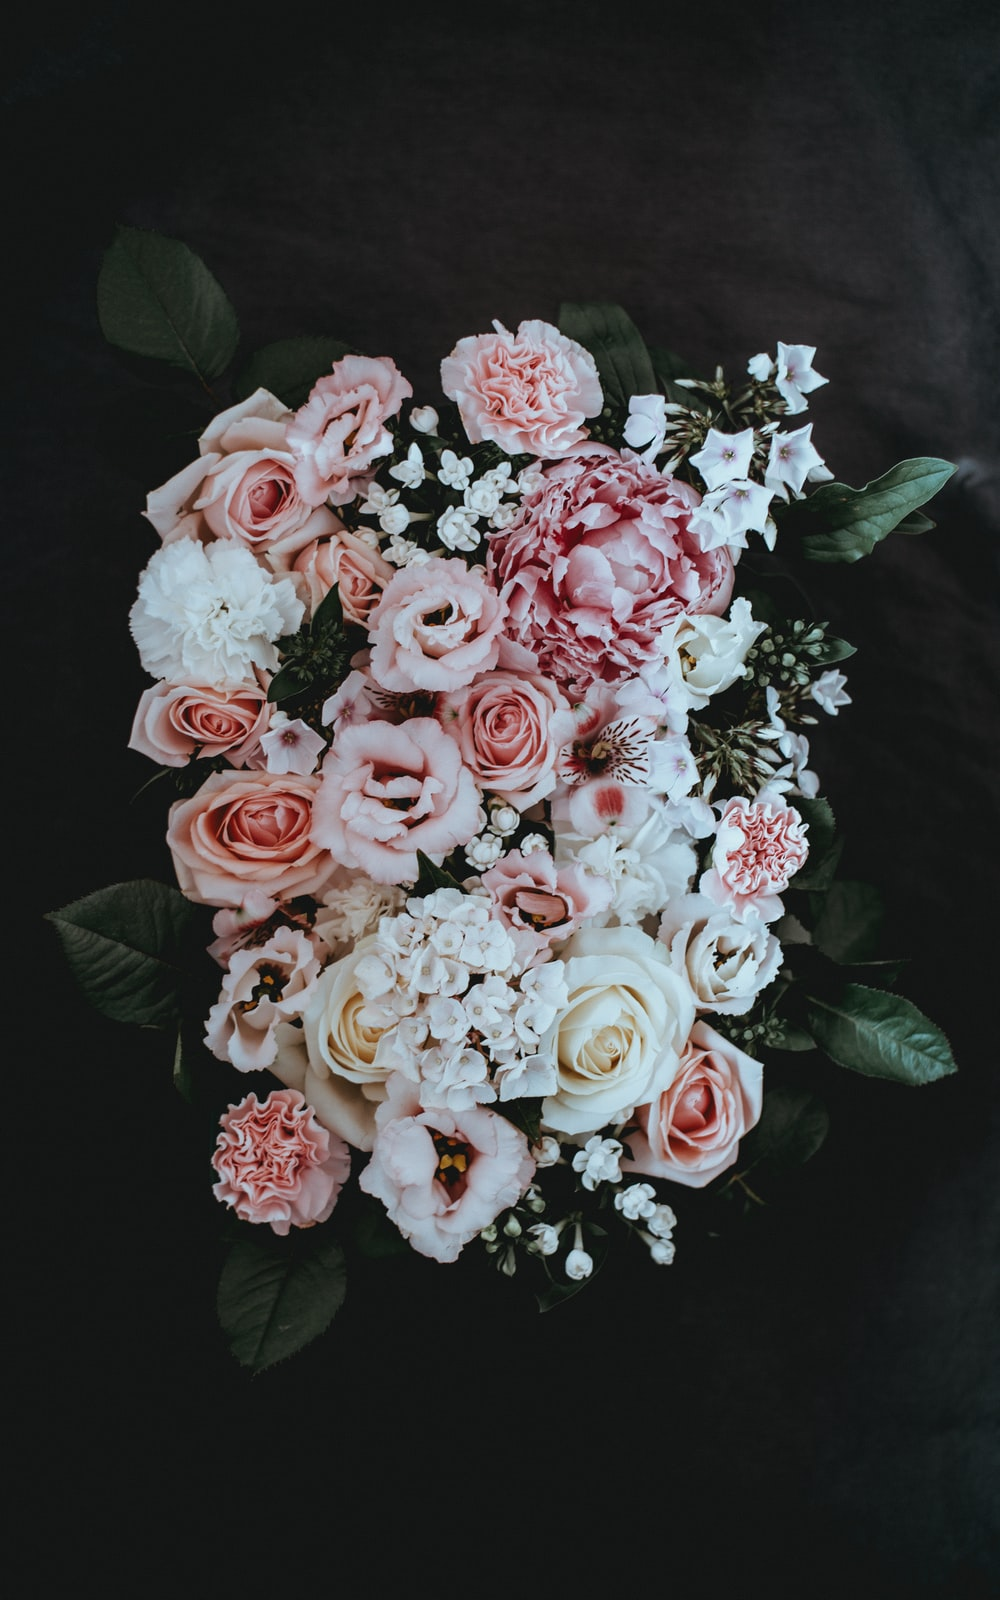 500 bouquet pictures download free images on unsplash white and pink petaled flower arrangement izmirmasajfo